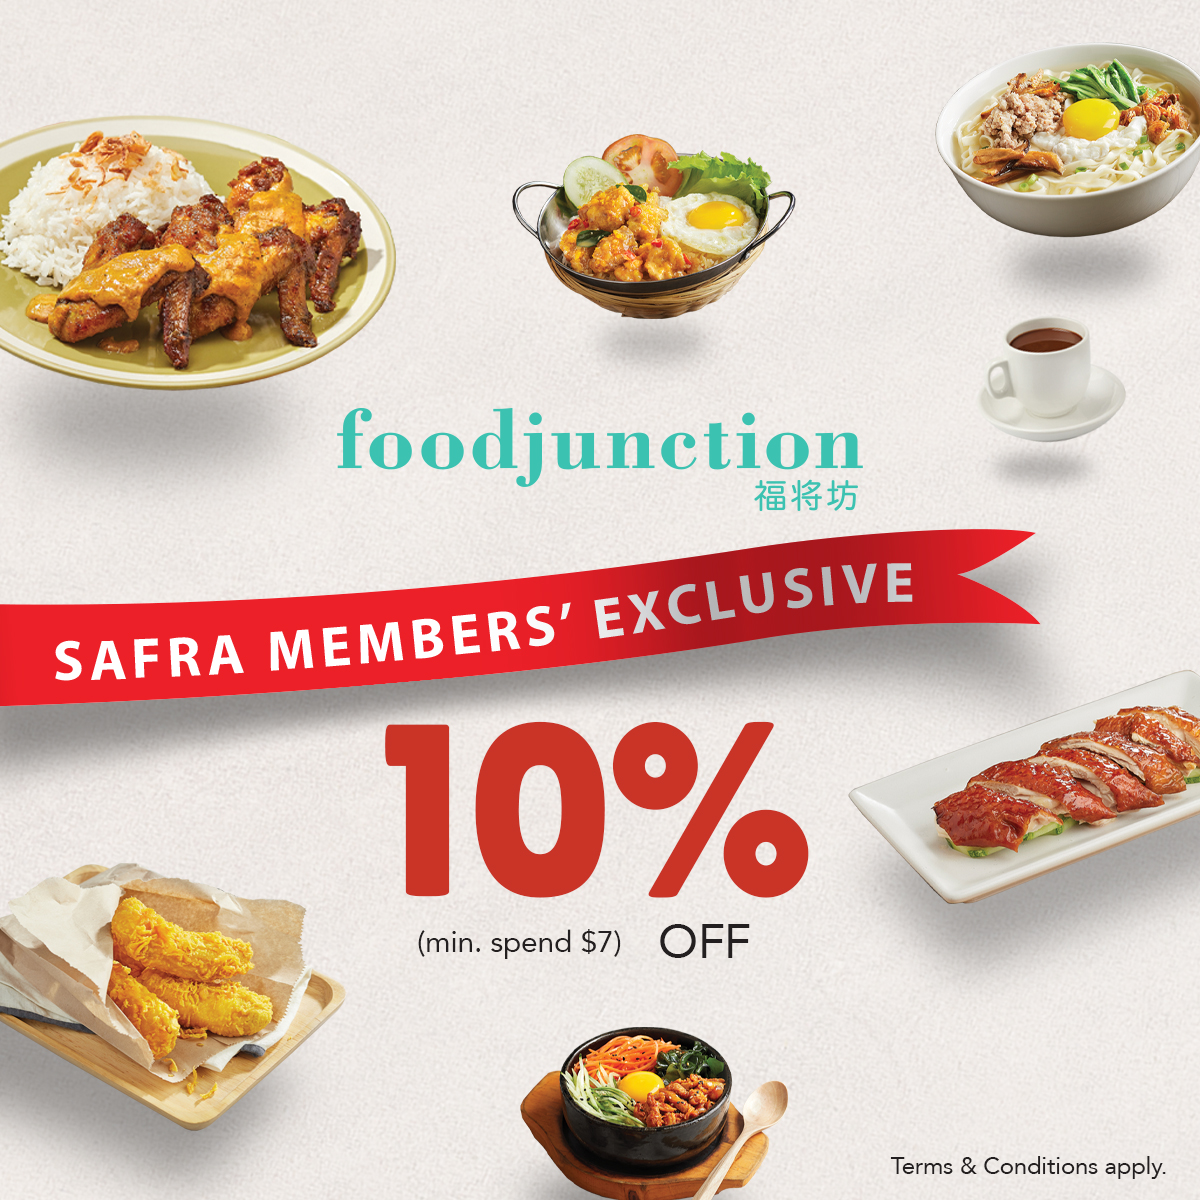 Food Junction - 10% Off Total Bill With $7 Min. Spend